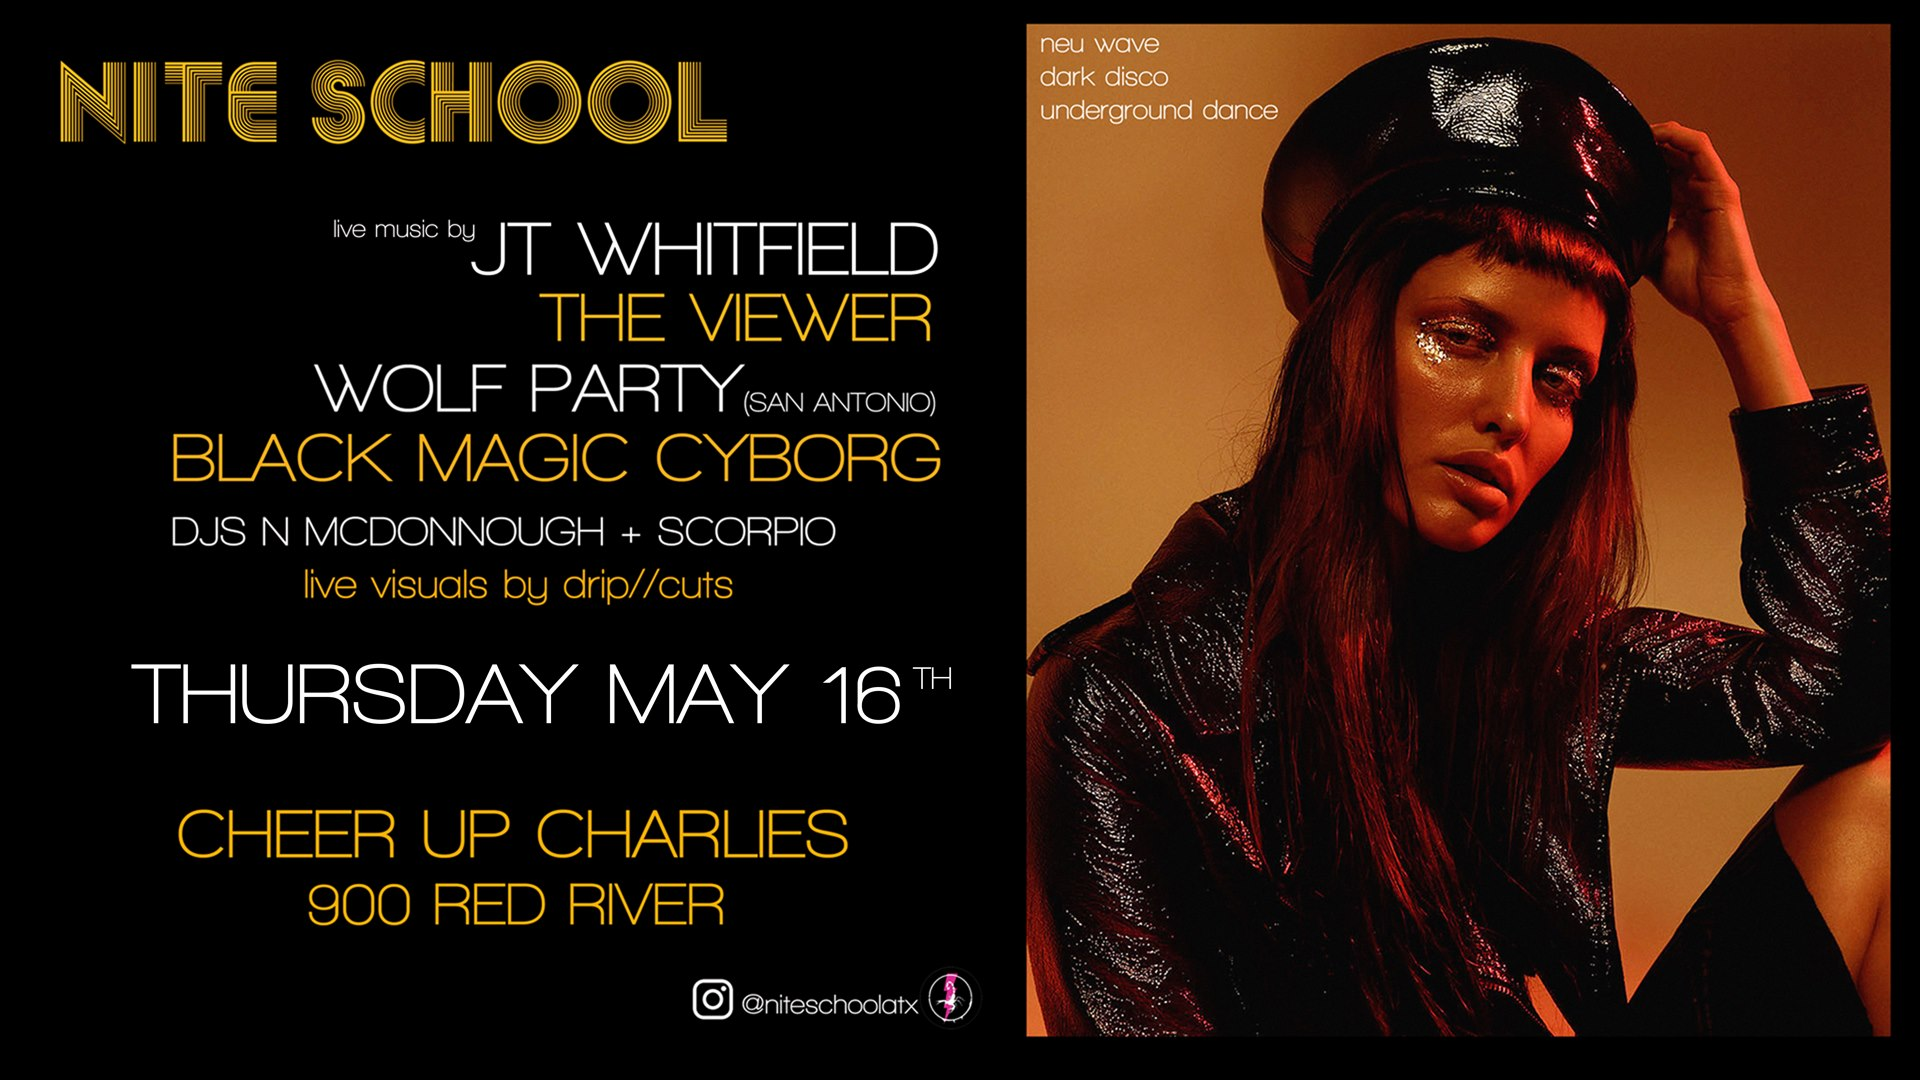 NITE SCHOOL w/ The Viewer/JT Whitfield/Wolf Party/+ more